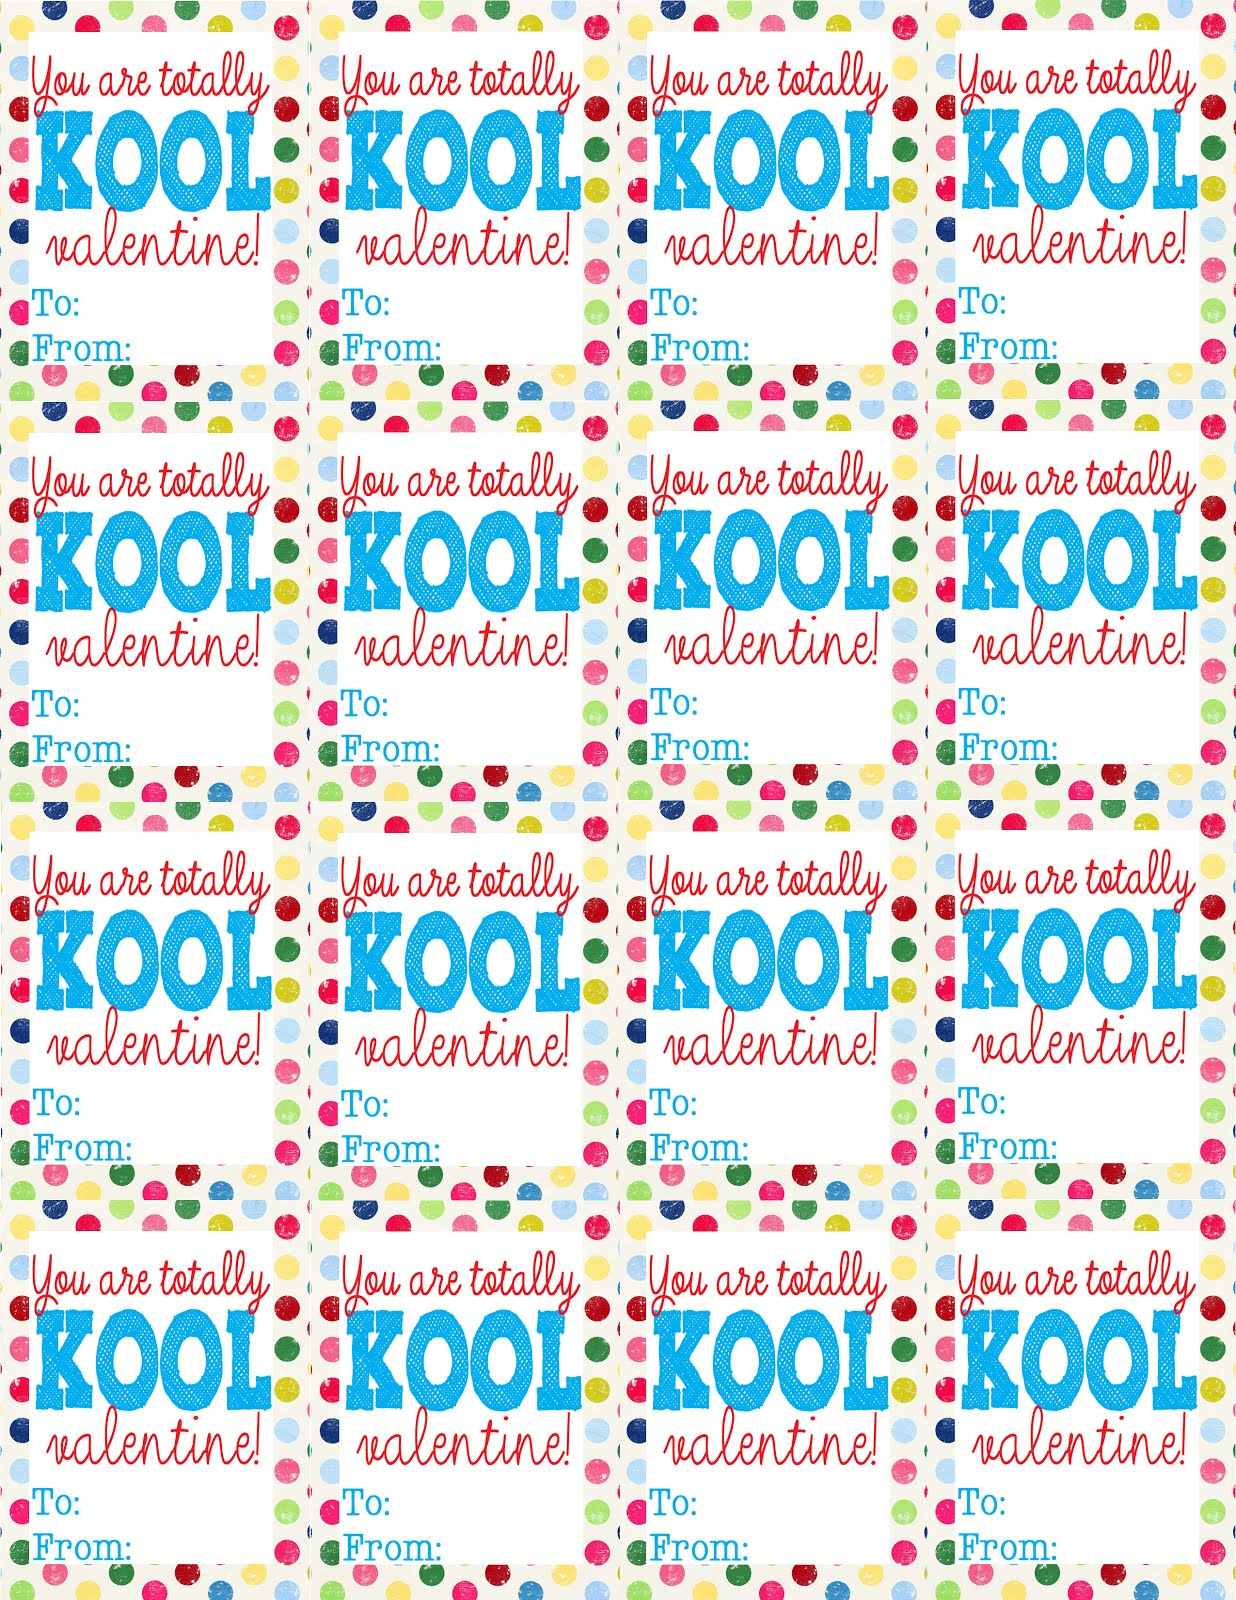 Pops and Podge: {Totally Kool} Printable